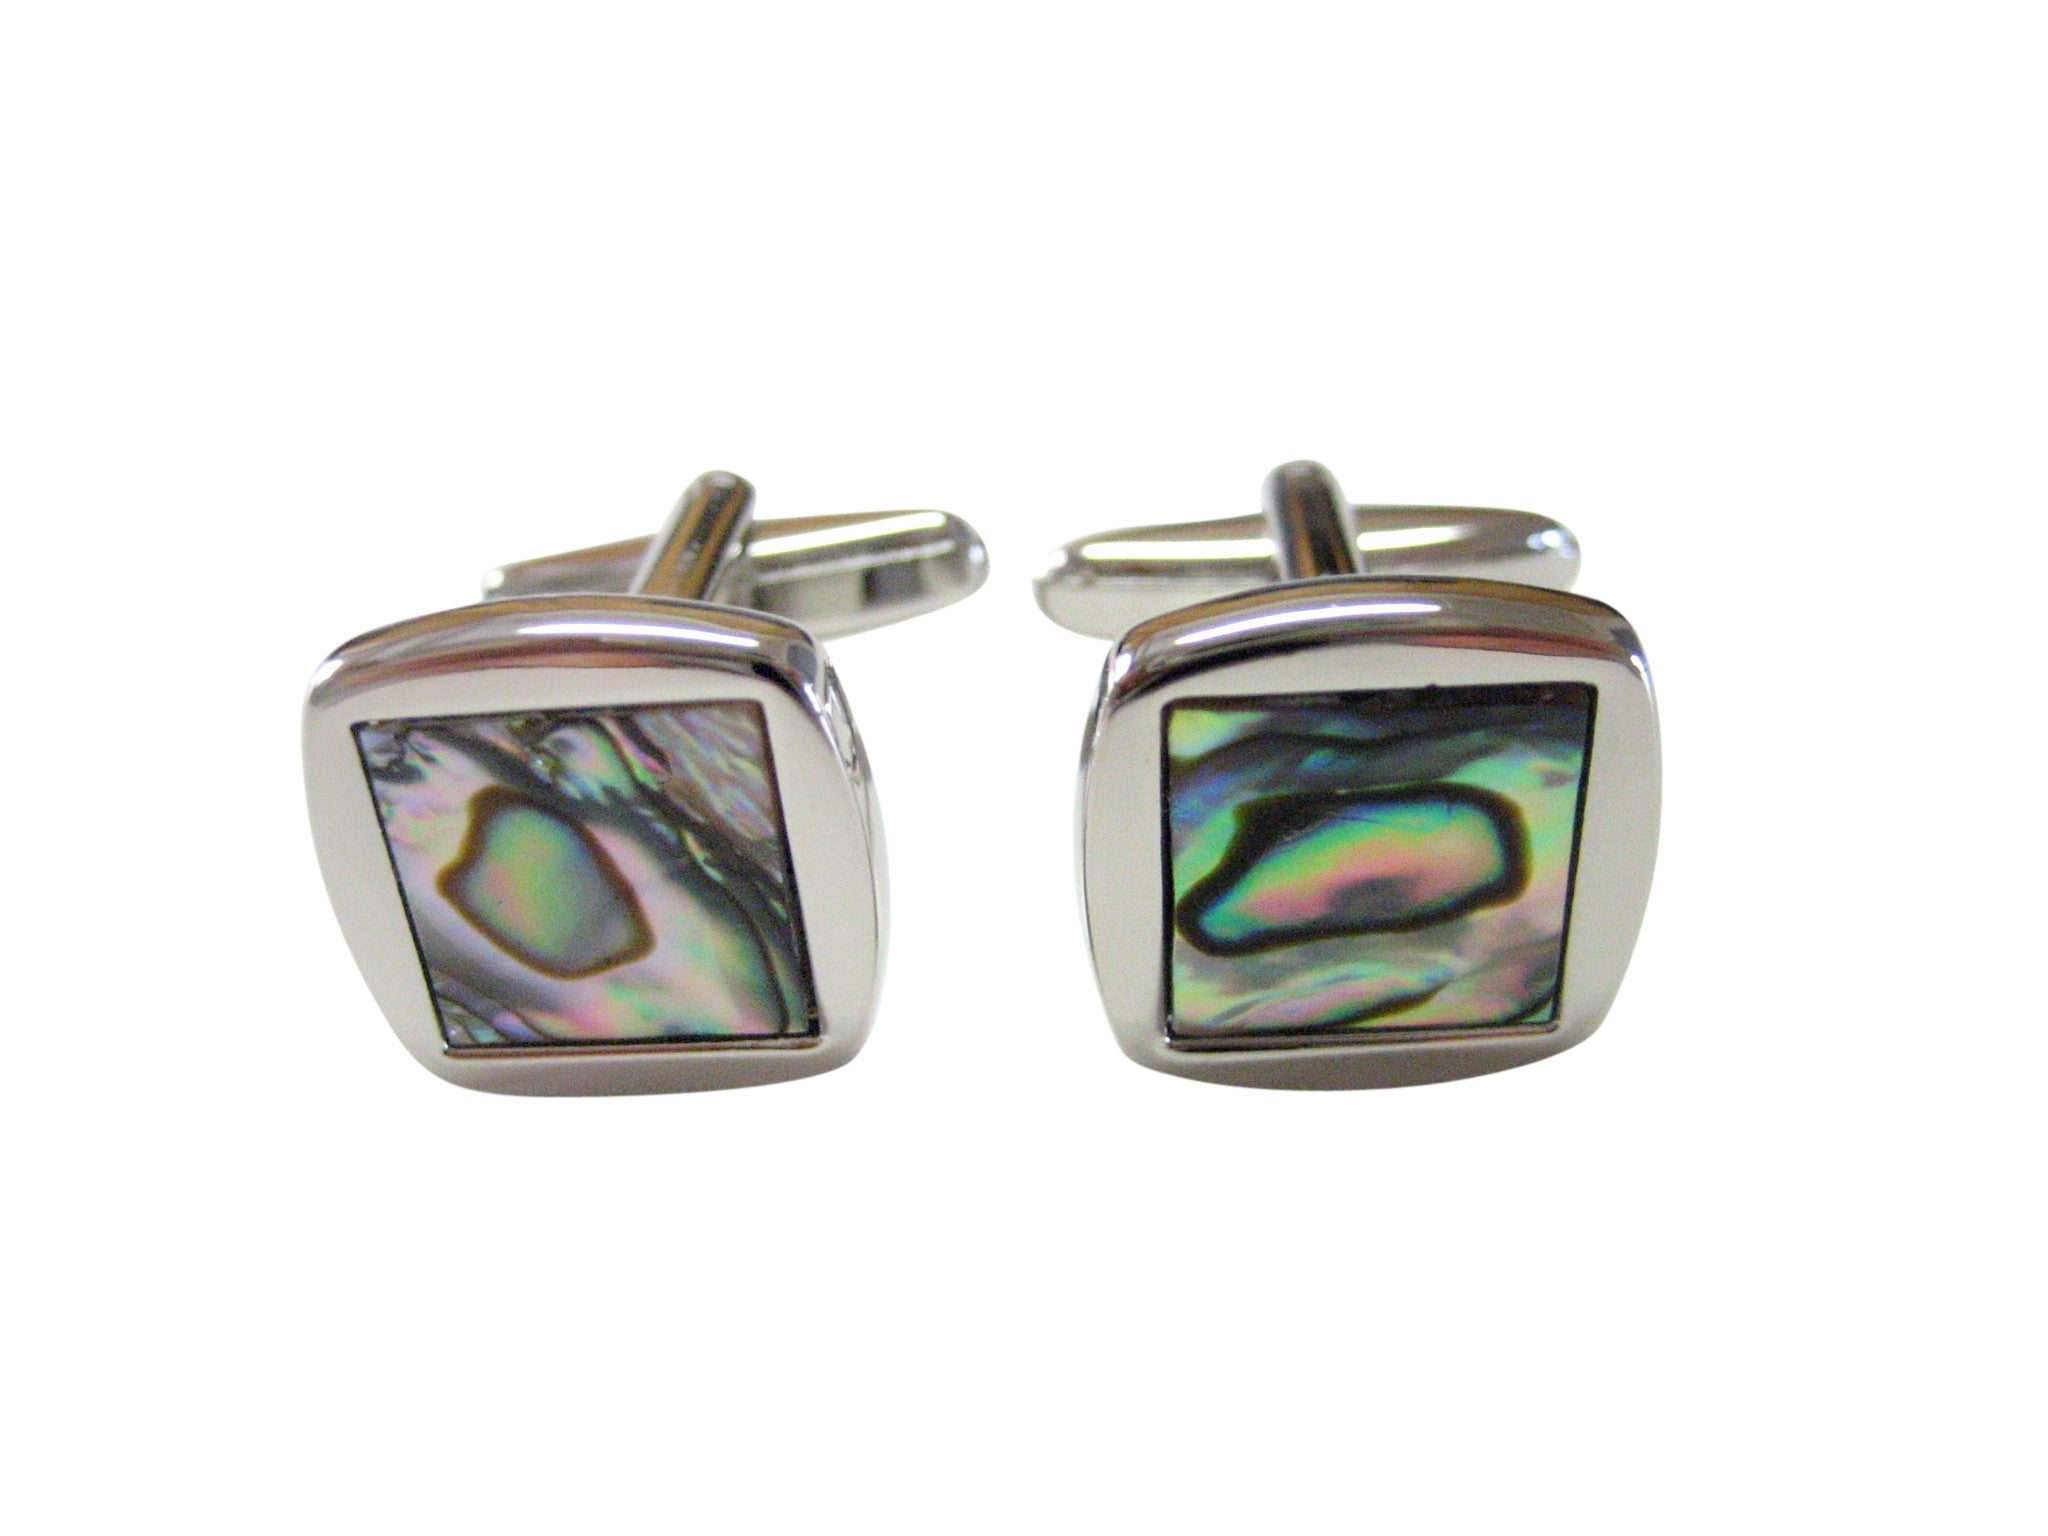 Square Shell Design Cufflinks